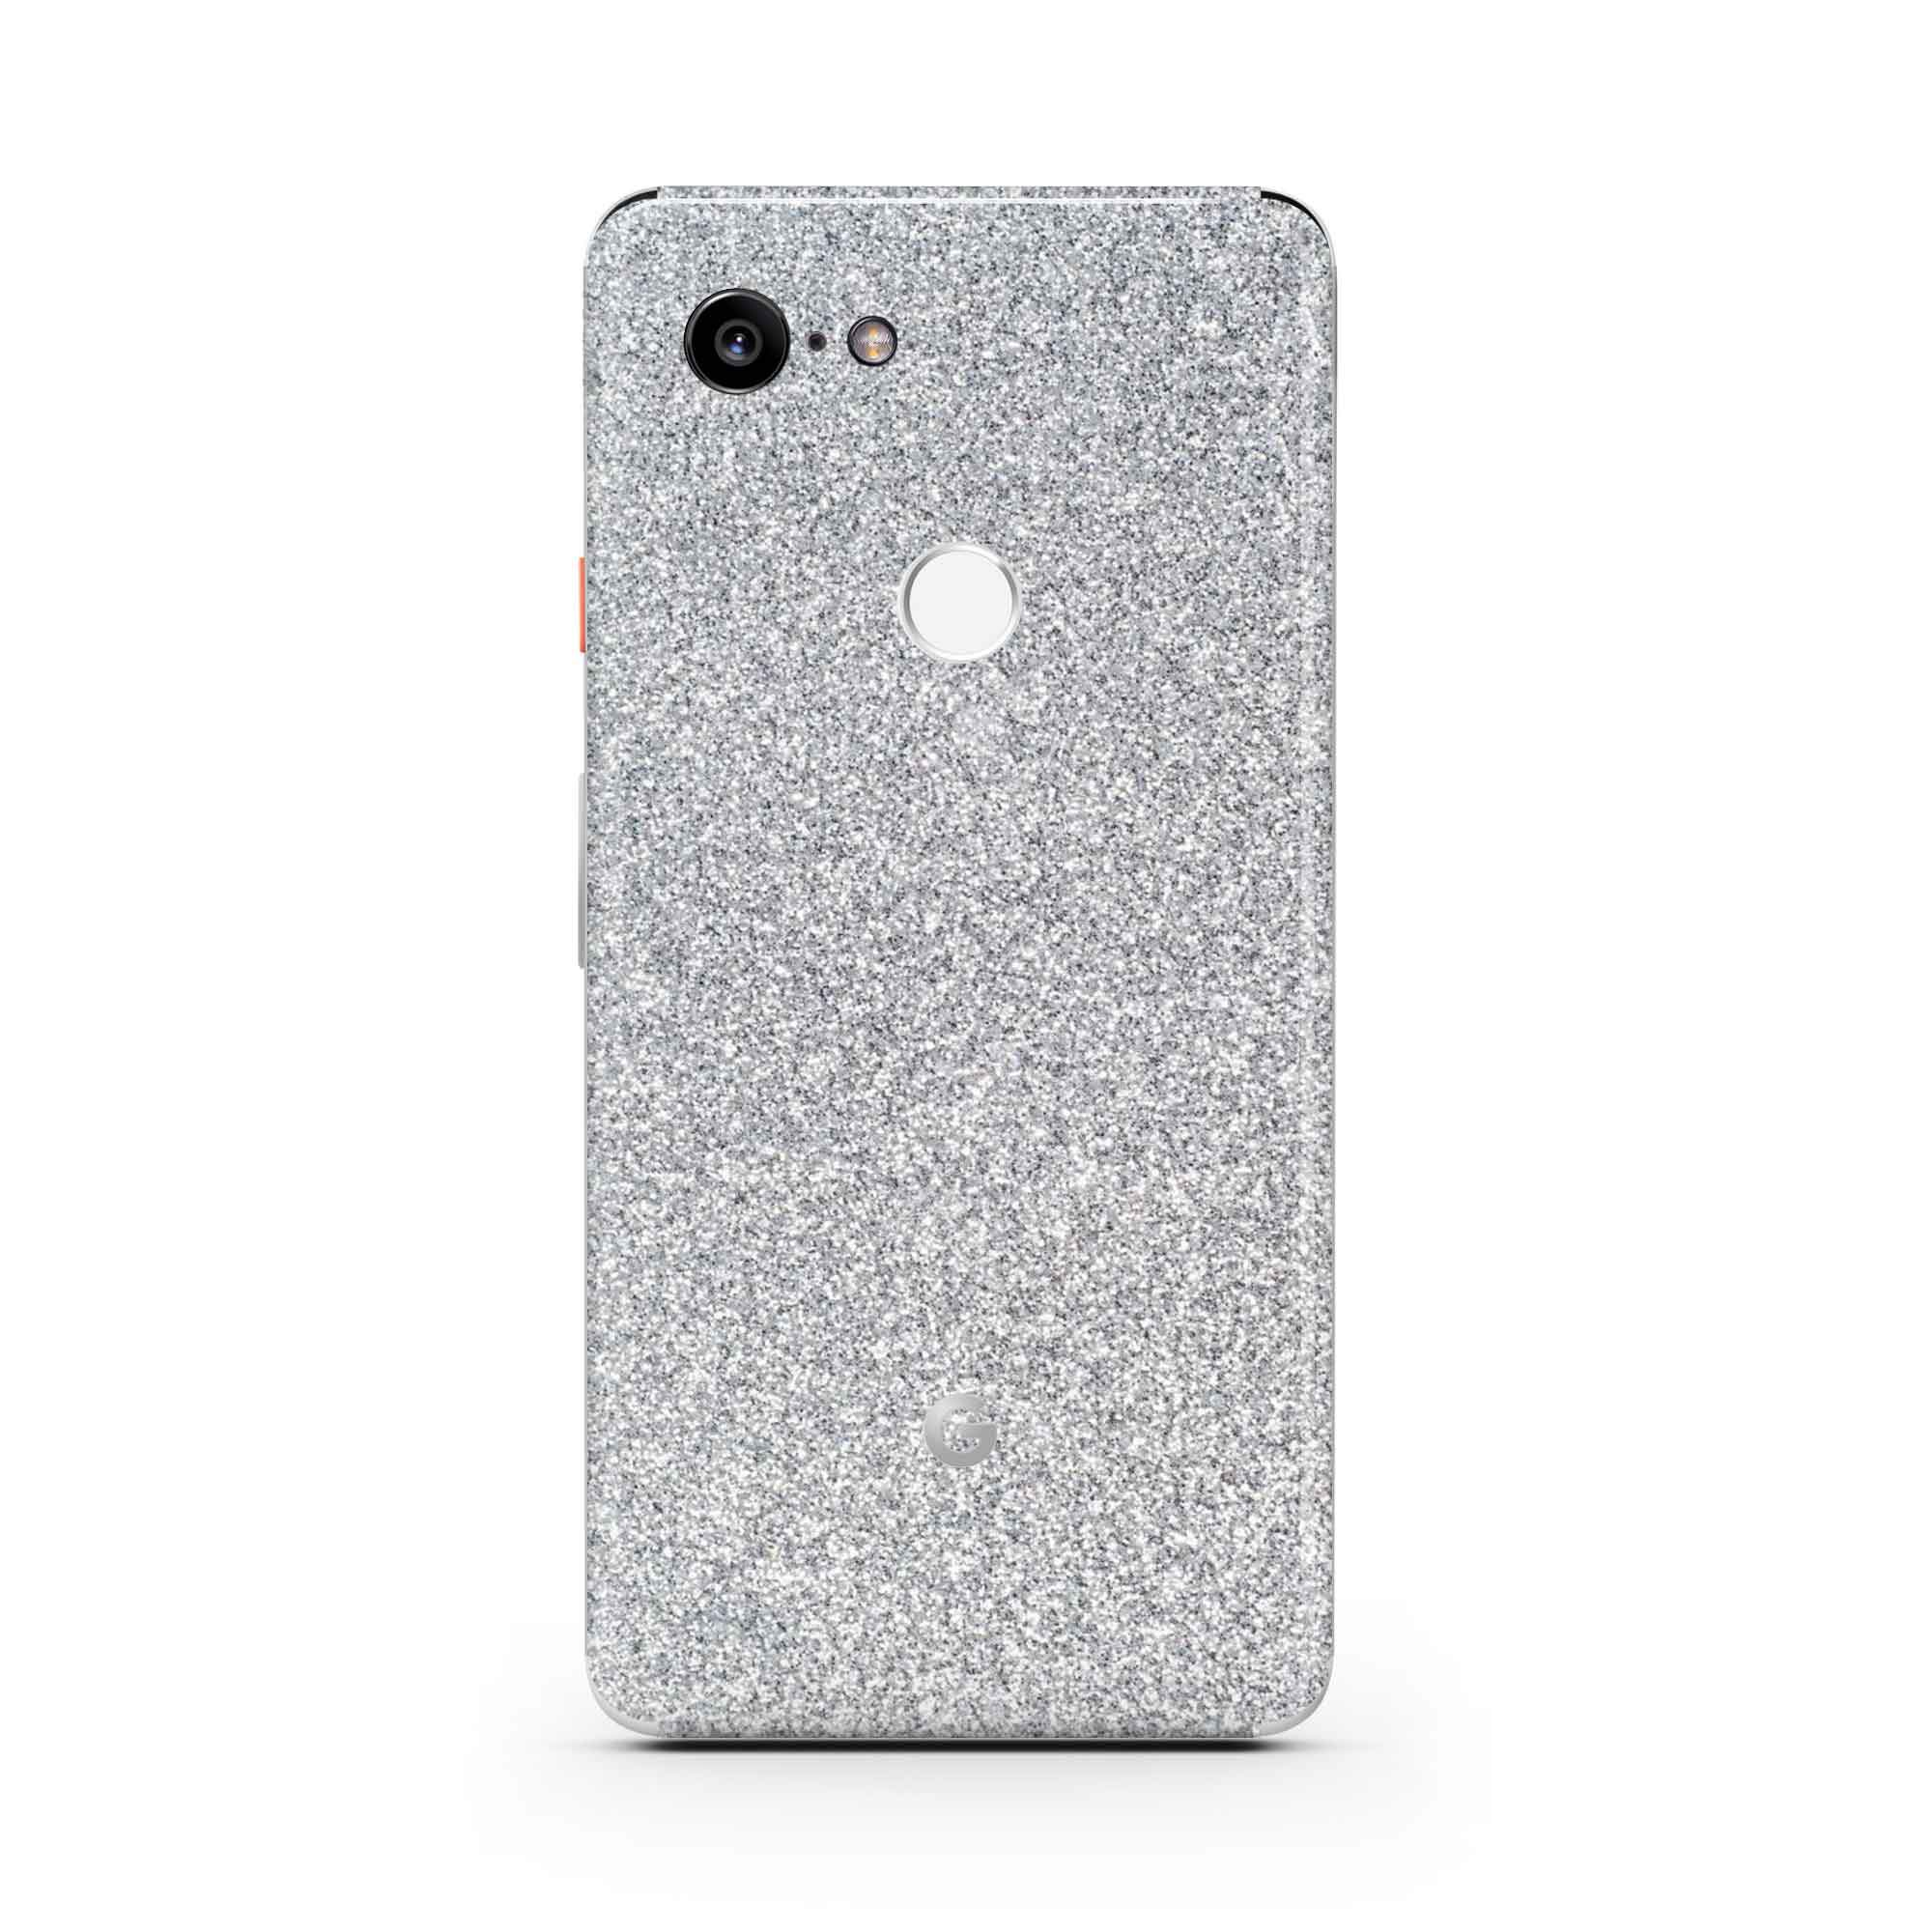 Glitter Pixel 2 XL Cover